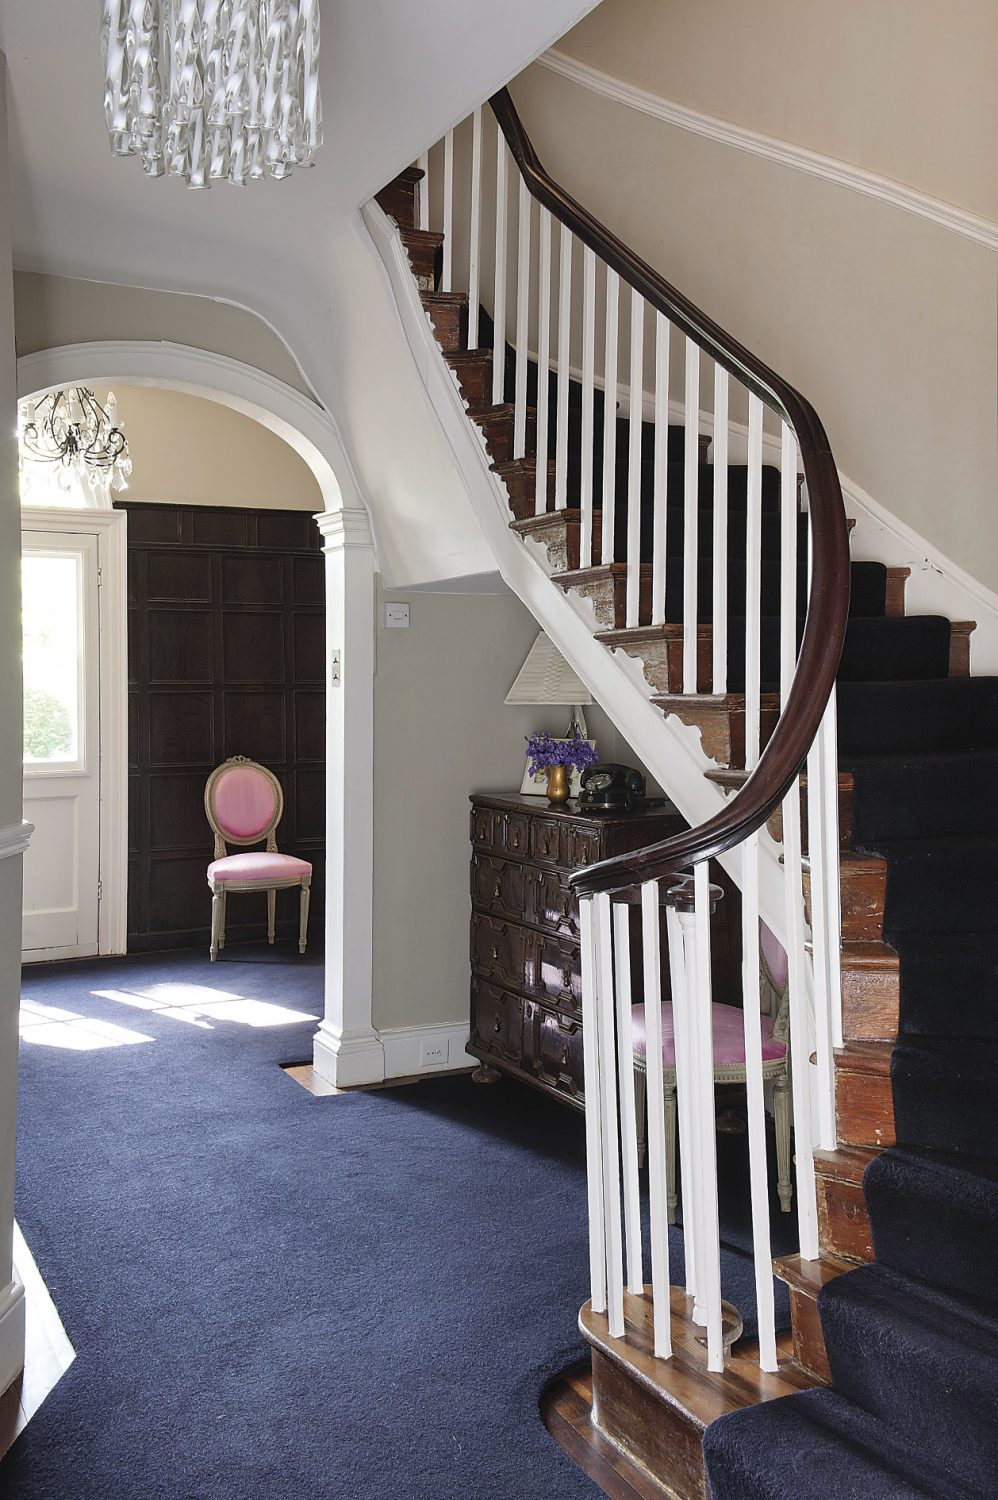 The hallway has been painted in a warm grey with a charcoal coloured carpet that is also used as a runner on the staircase that twists in classic Georgian style. Under the stairs is an oak and walnut chest of drawers bought from Strand Antiques in Rye